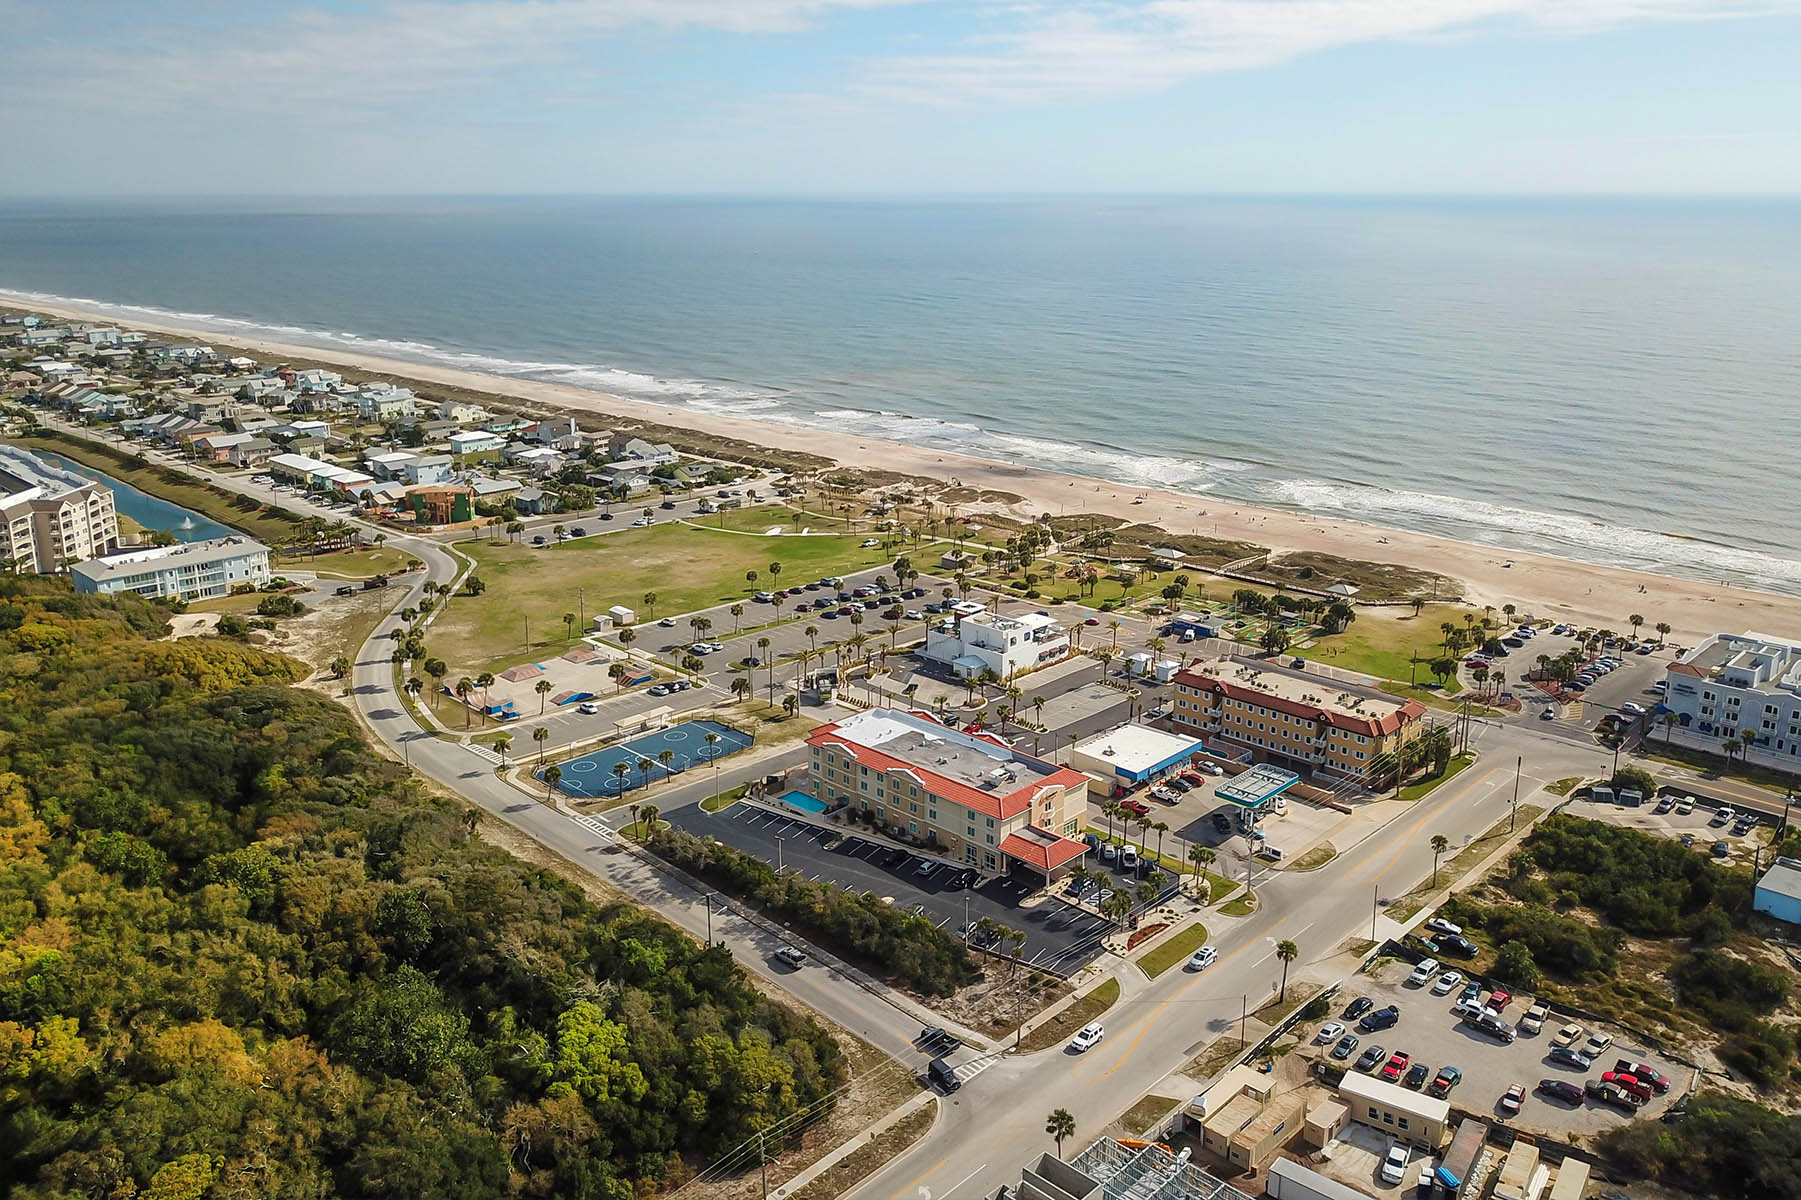 Aerial Photography View of Hotel on the Beach